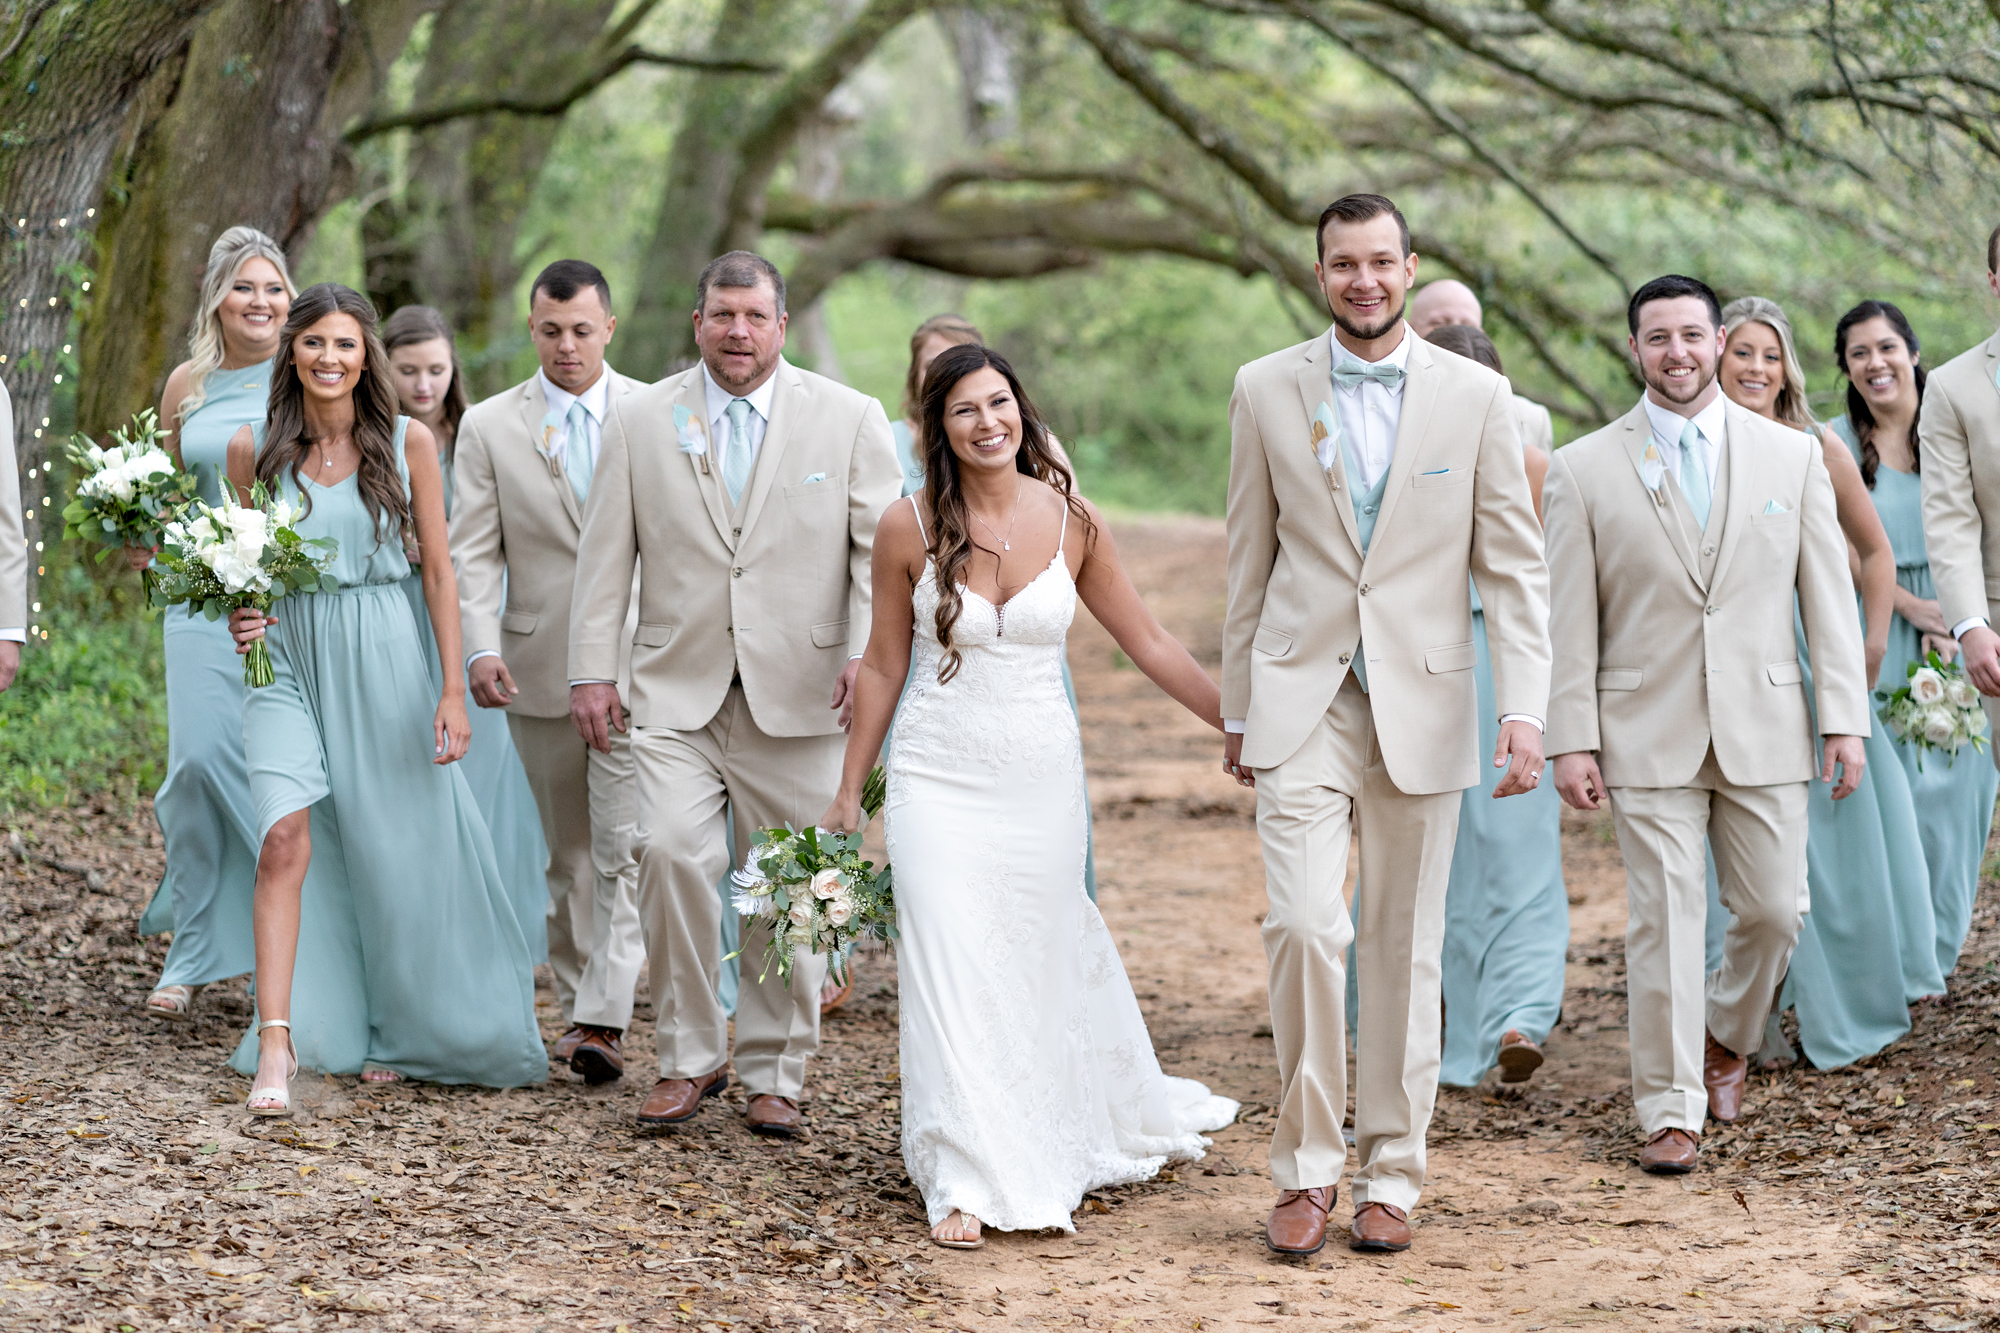 Fairhope-Alabama-Wedding-Photographers-Nick-Drollette-Photography-138.jpg